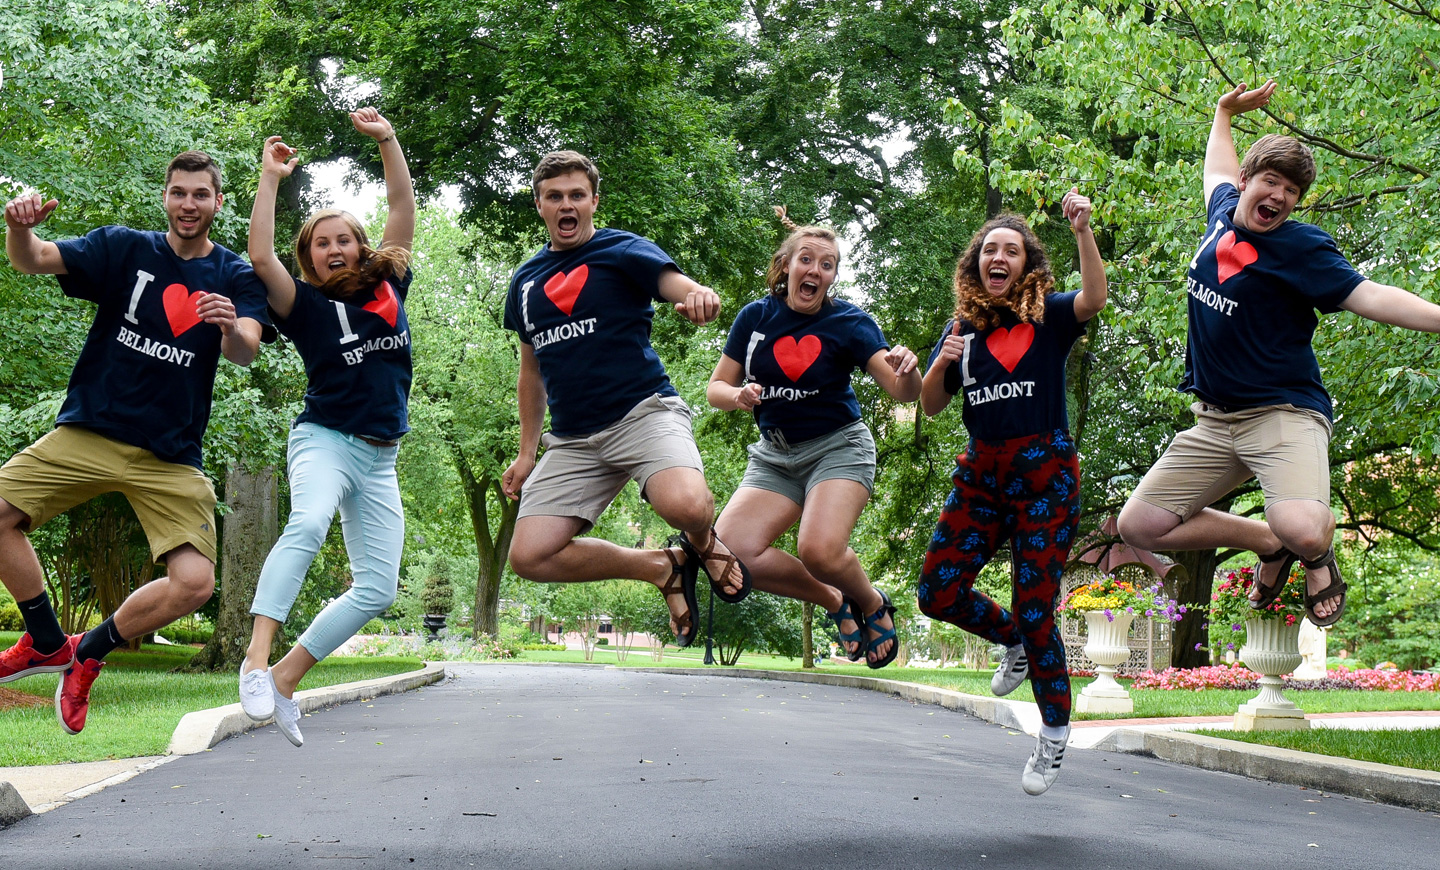 Students jump in excitement on the main quad of Belmont's campus.